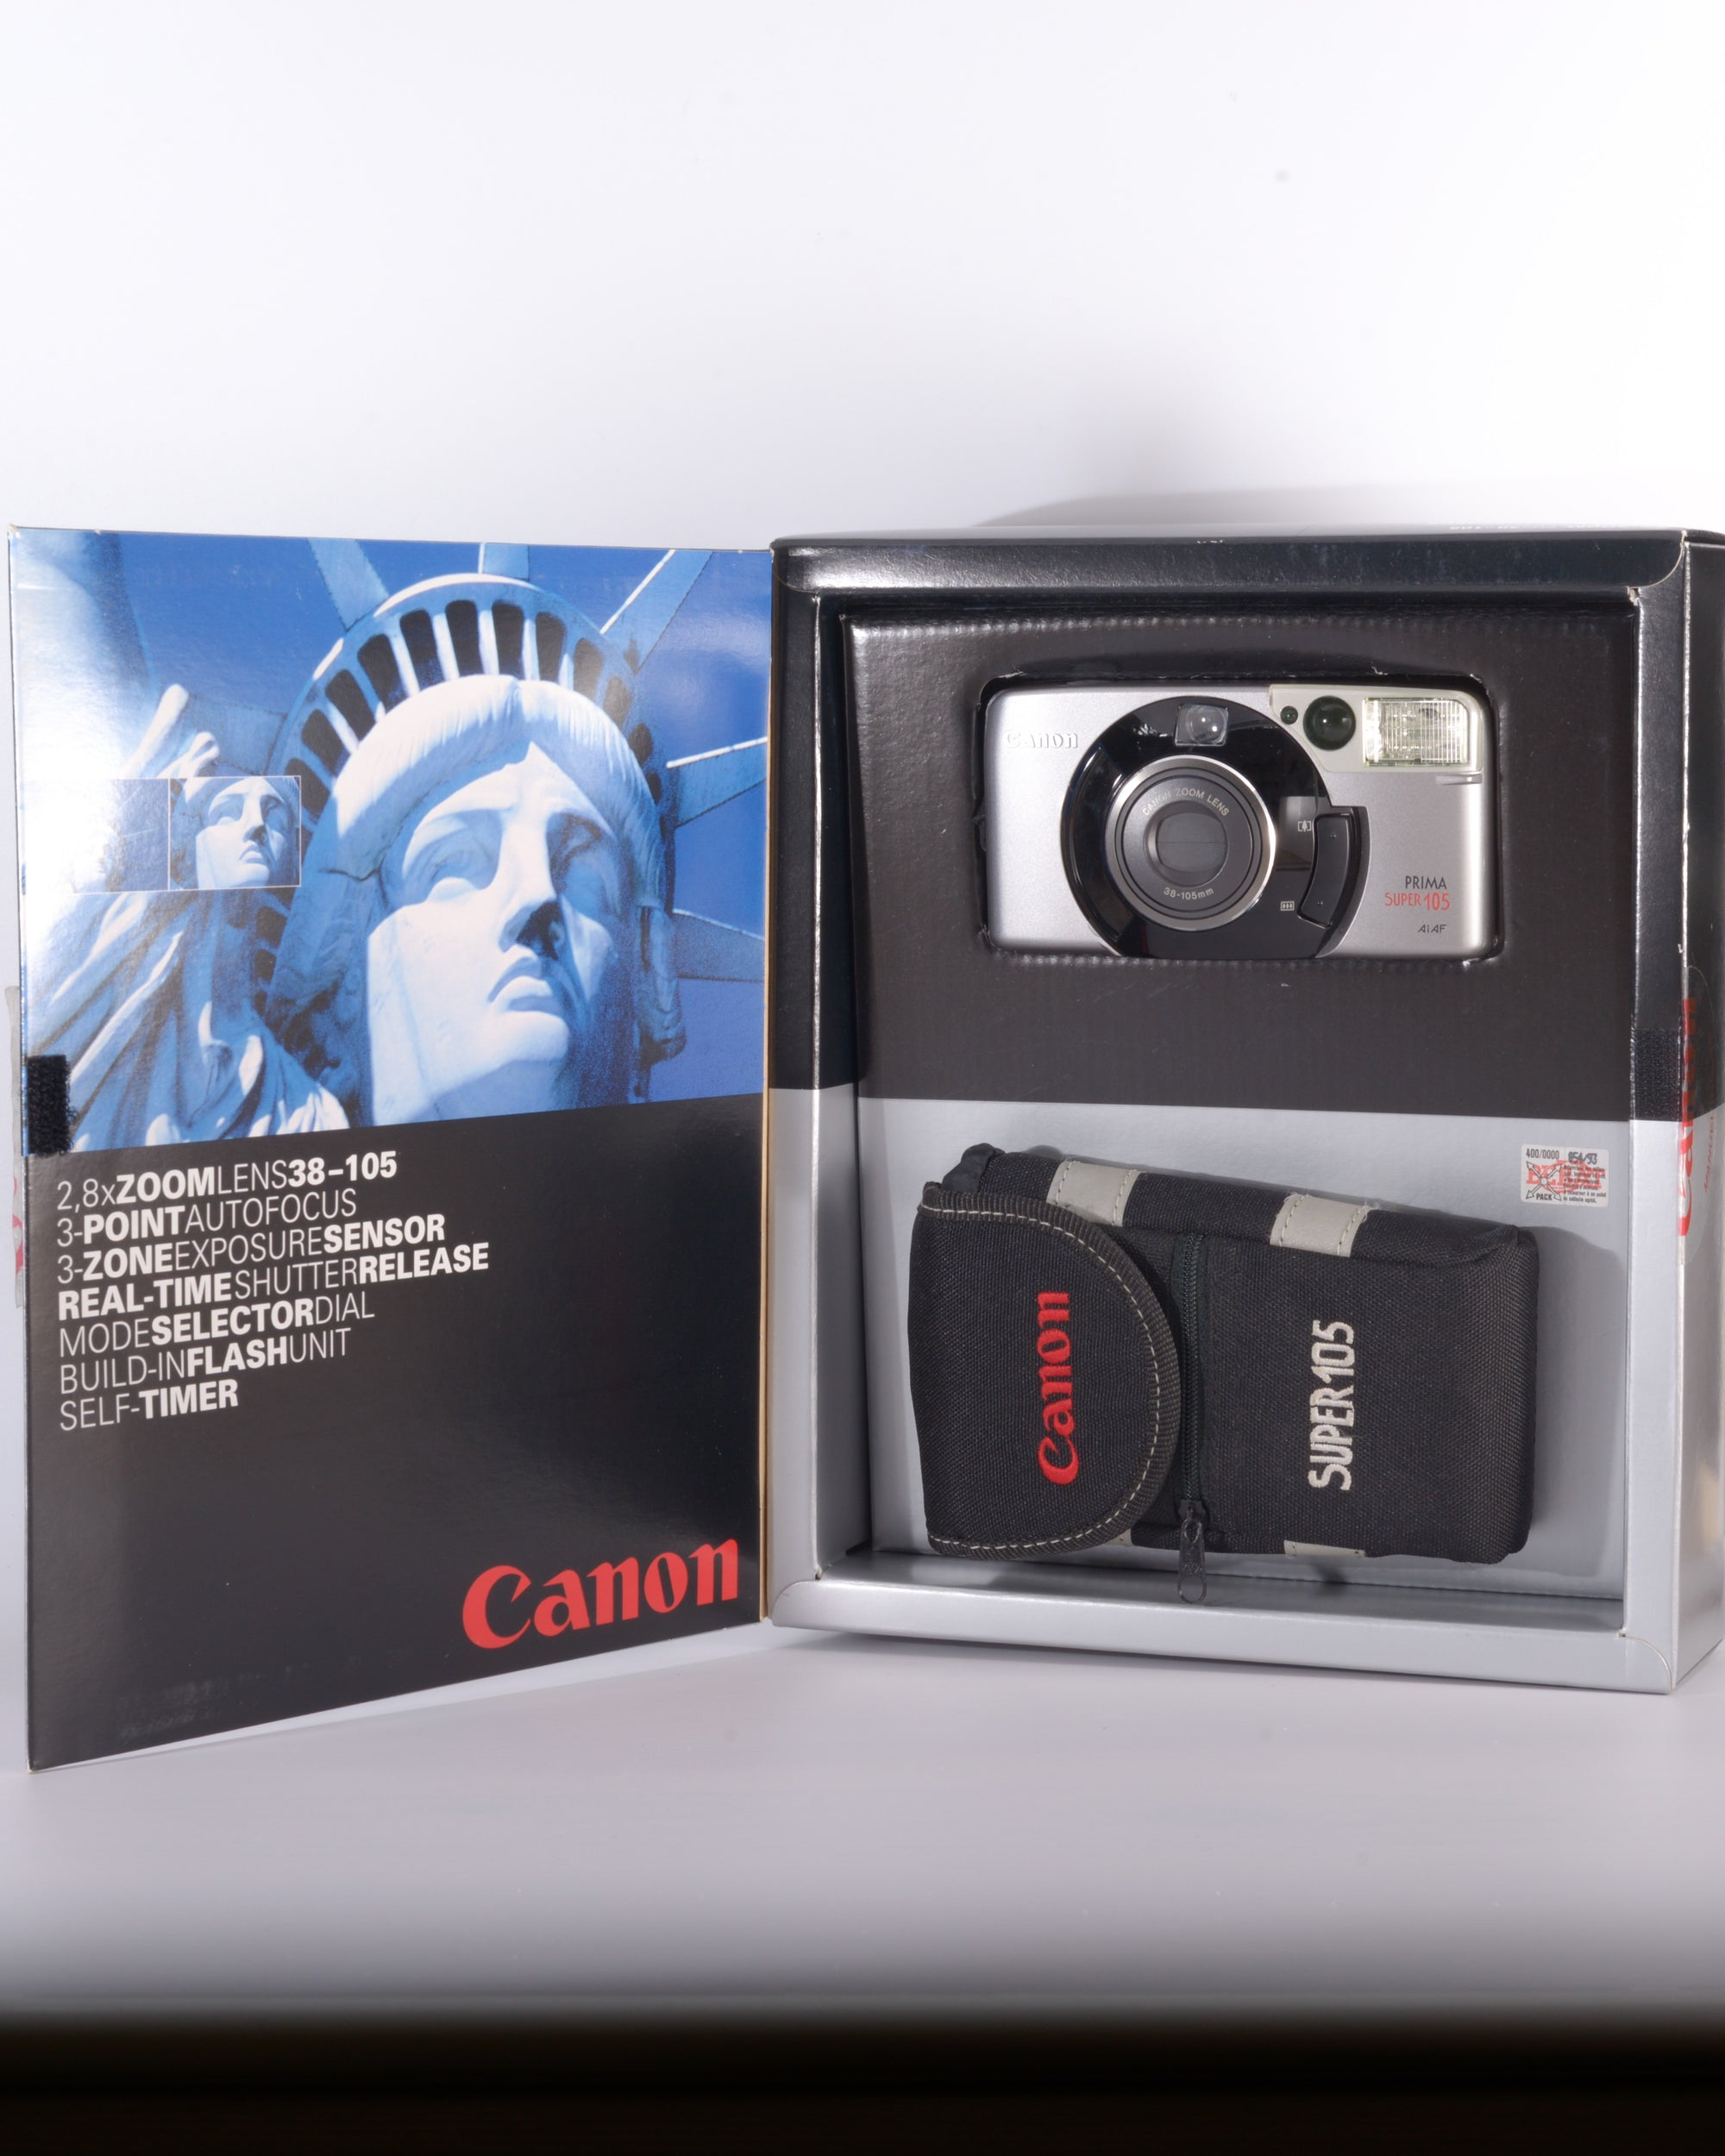 Boxed Canon Prima Super 105 35mm Point & Shoot Film Camera with 38-105mm Lens